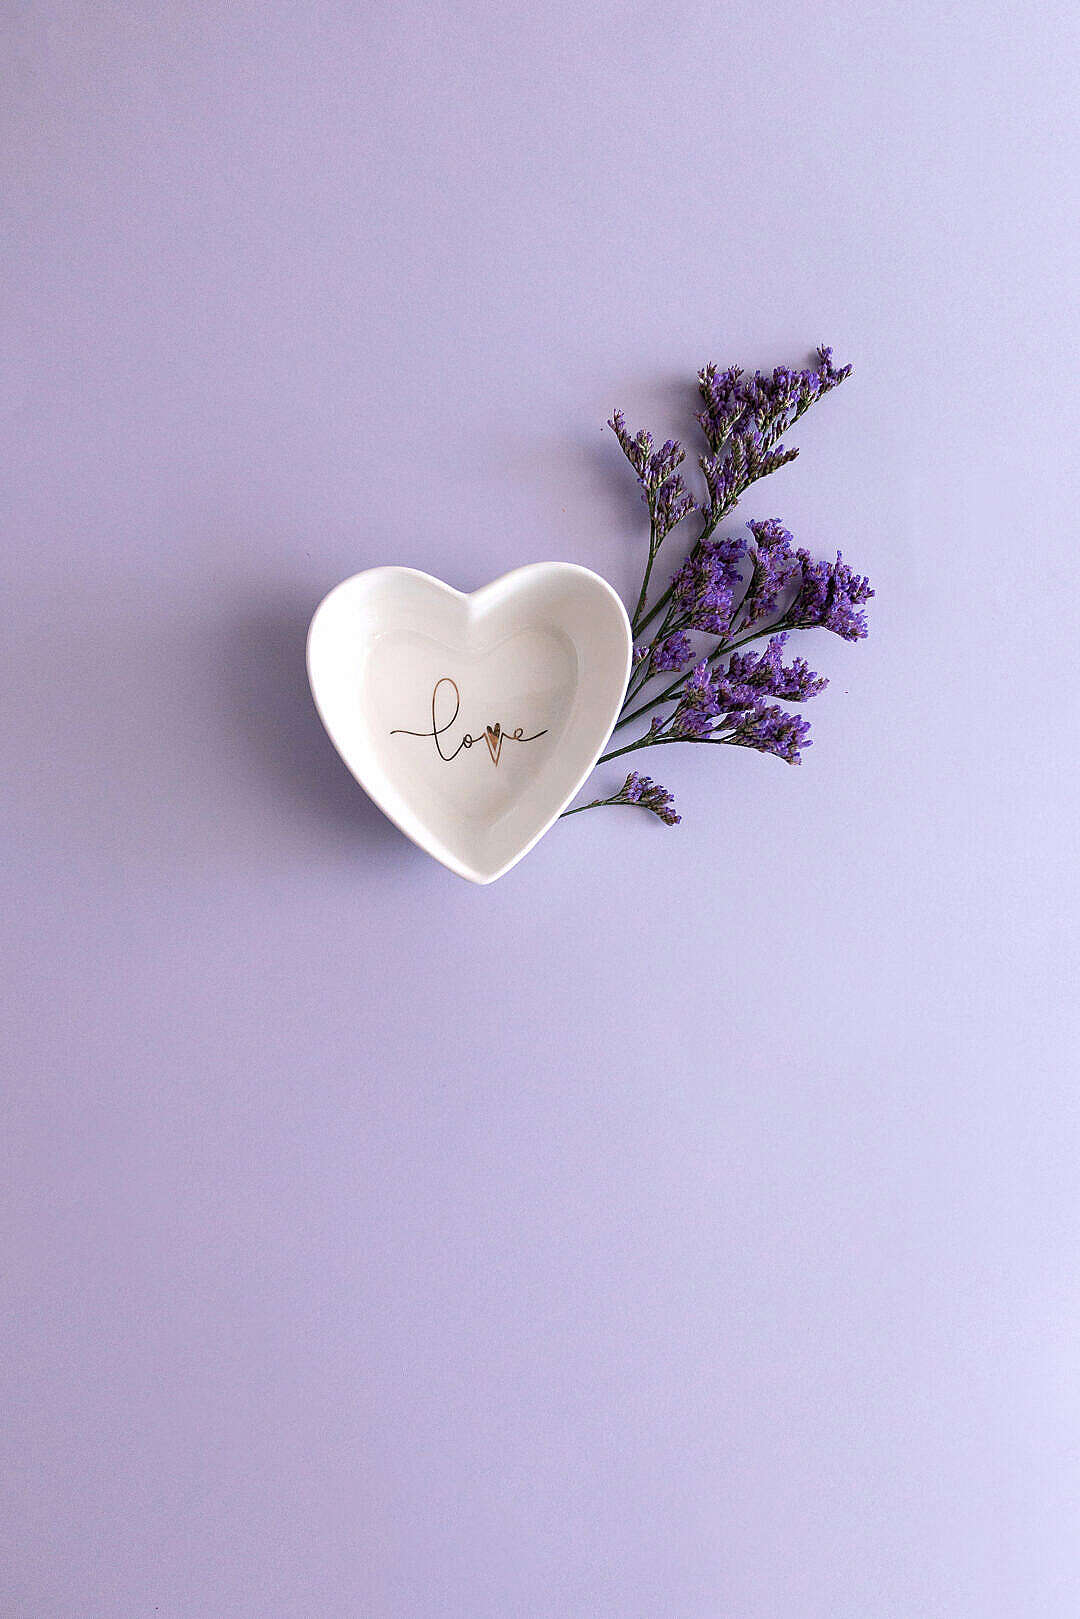 Download Heart Shaped Bowl with Flower on Purple Background FREE Stock Photo